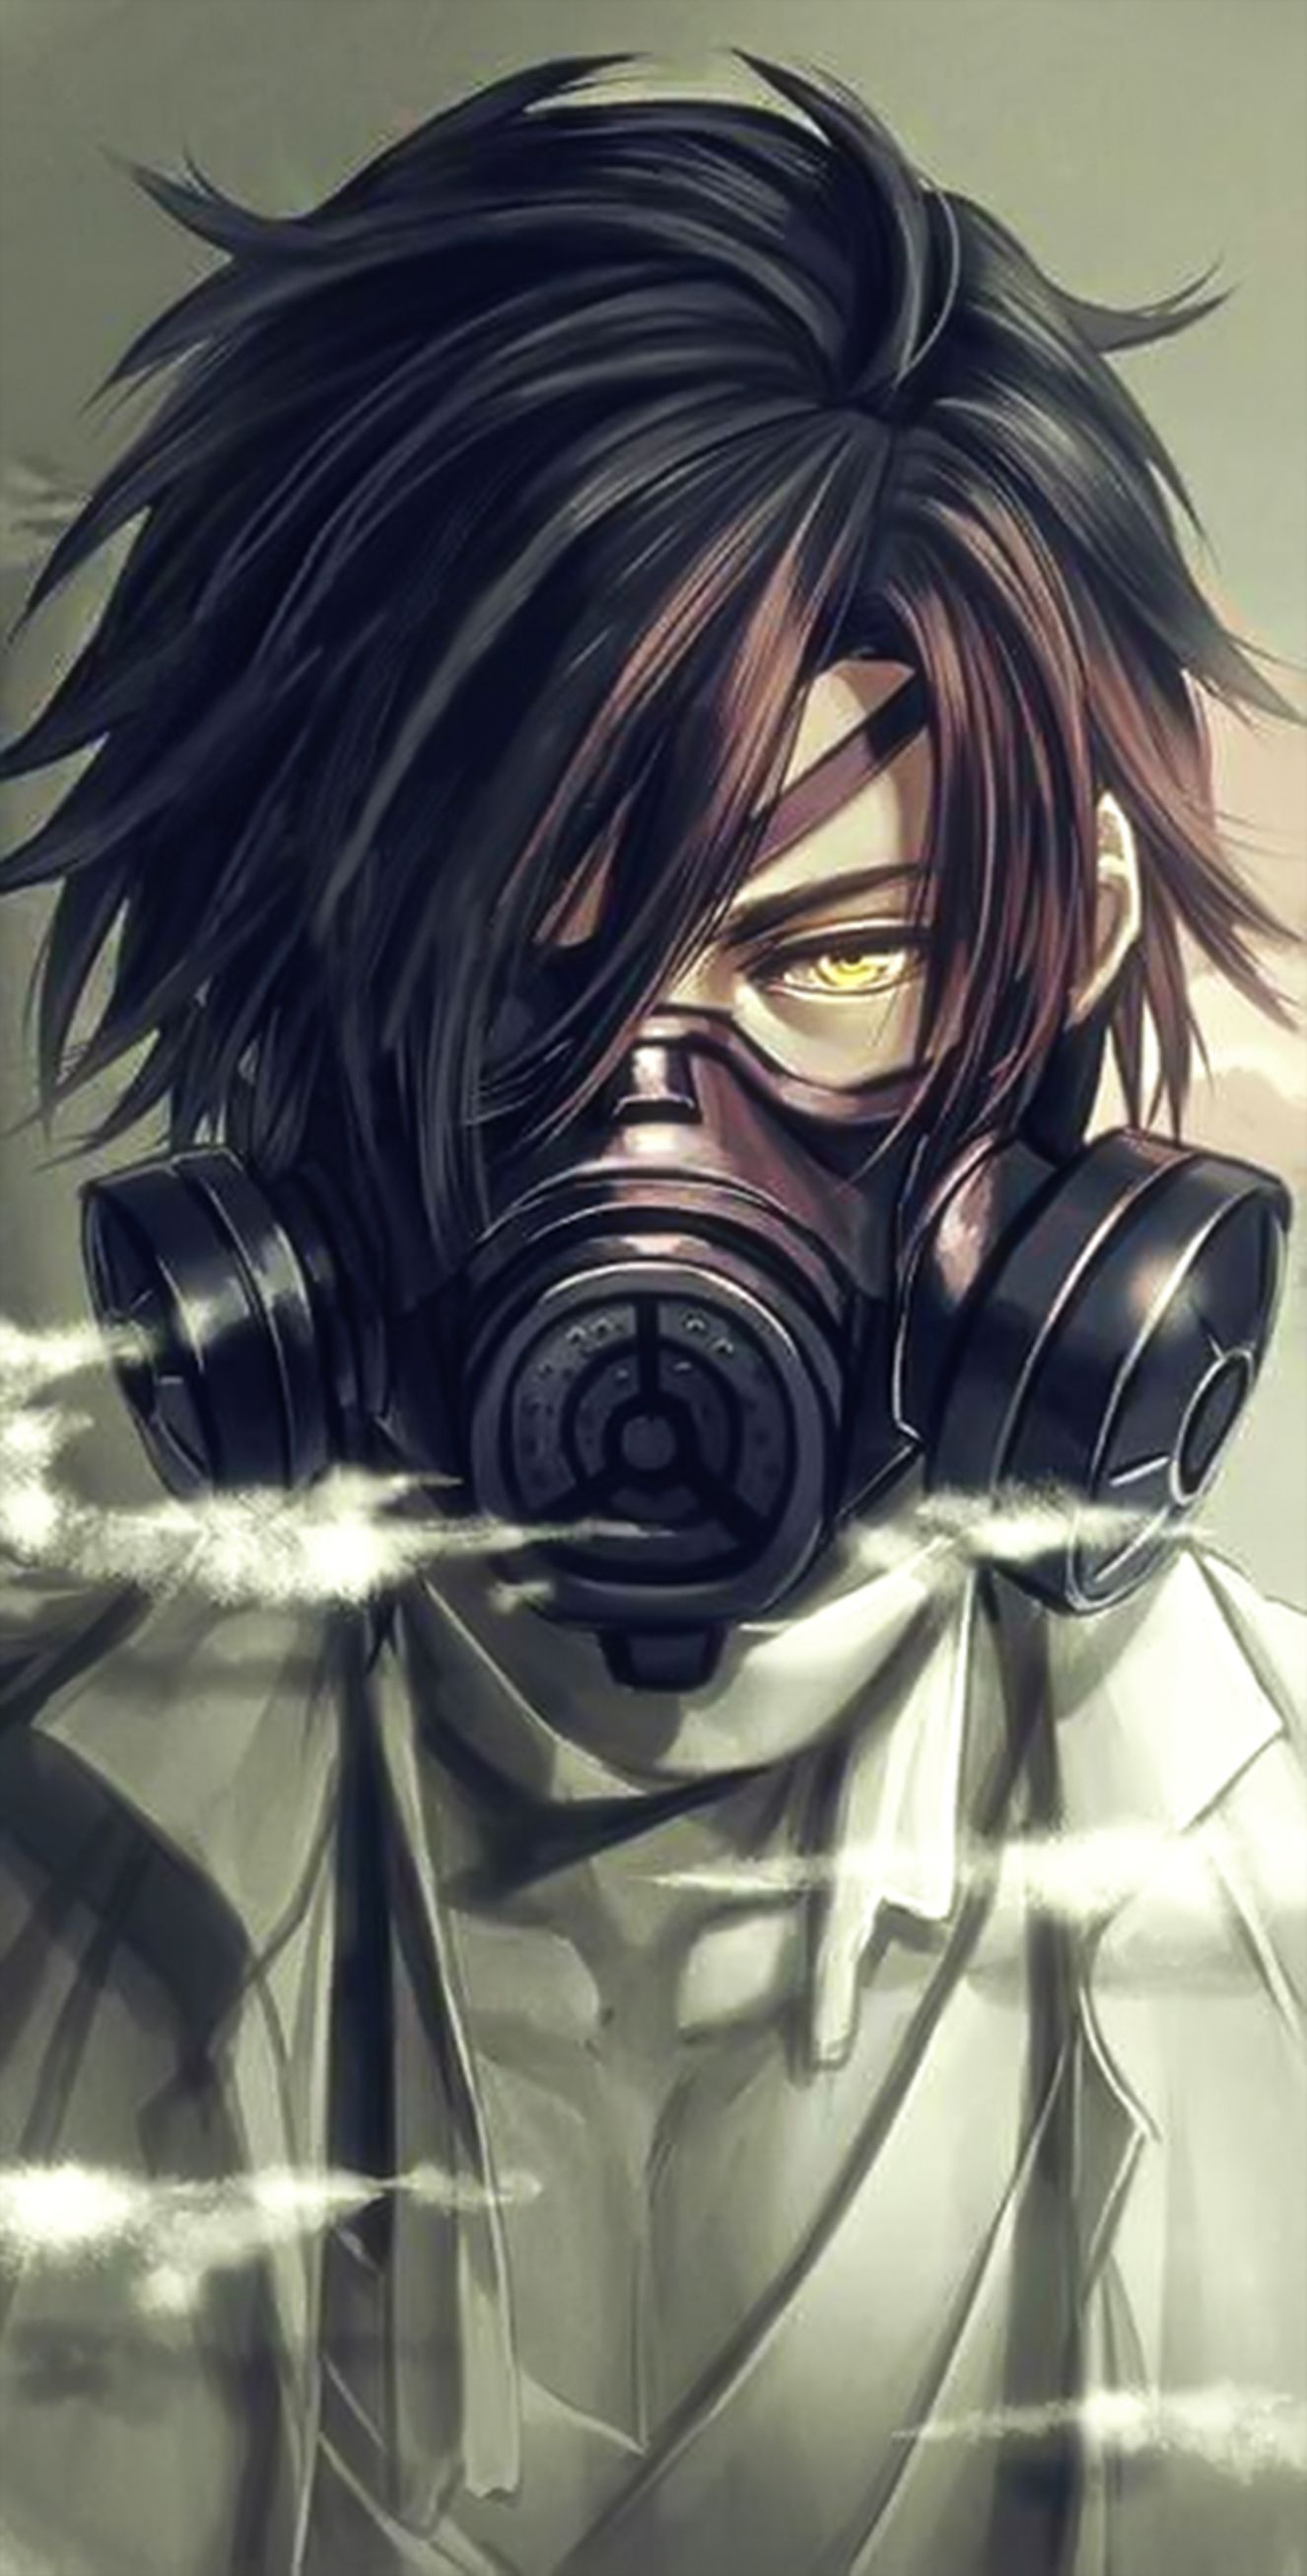 Masked Anime Guy : masked, anime, Anime, Wallpaper